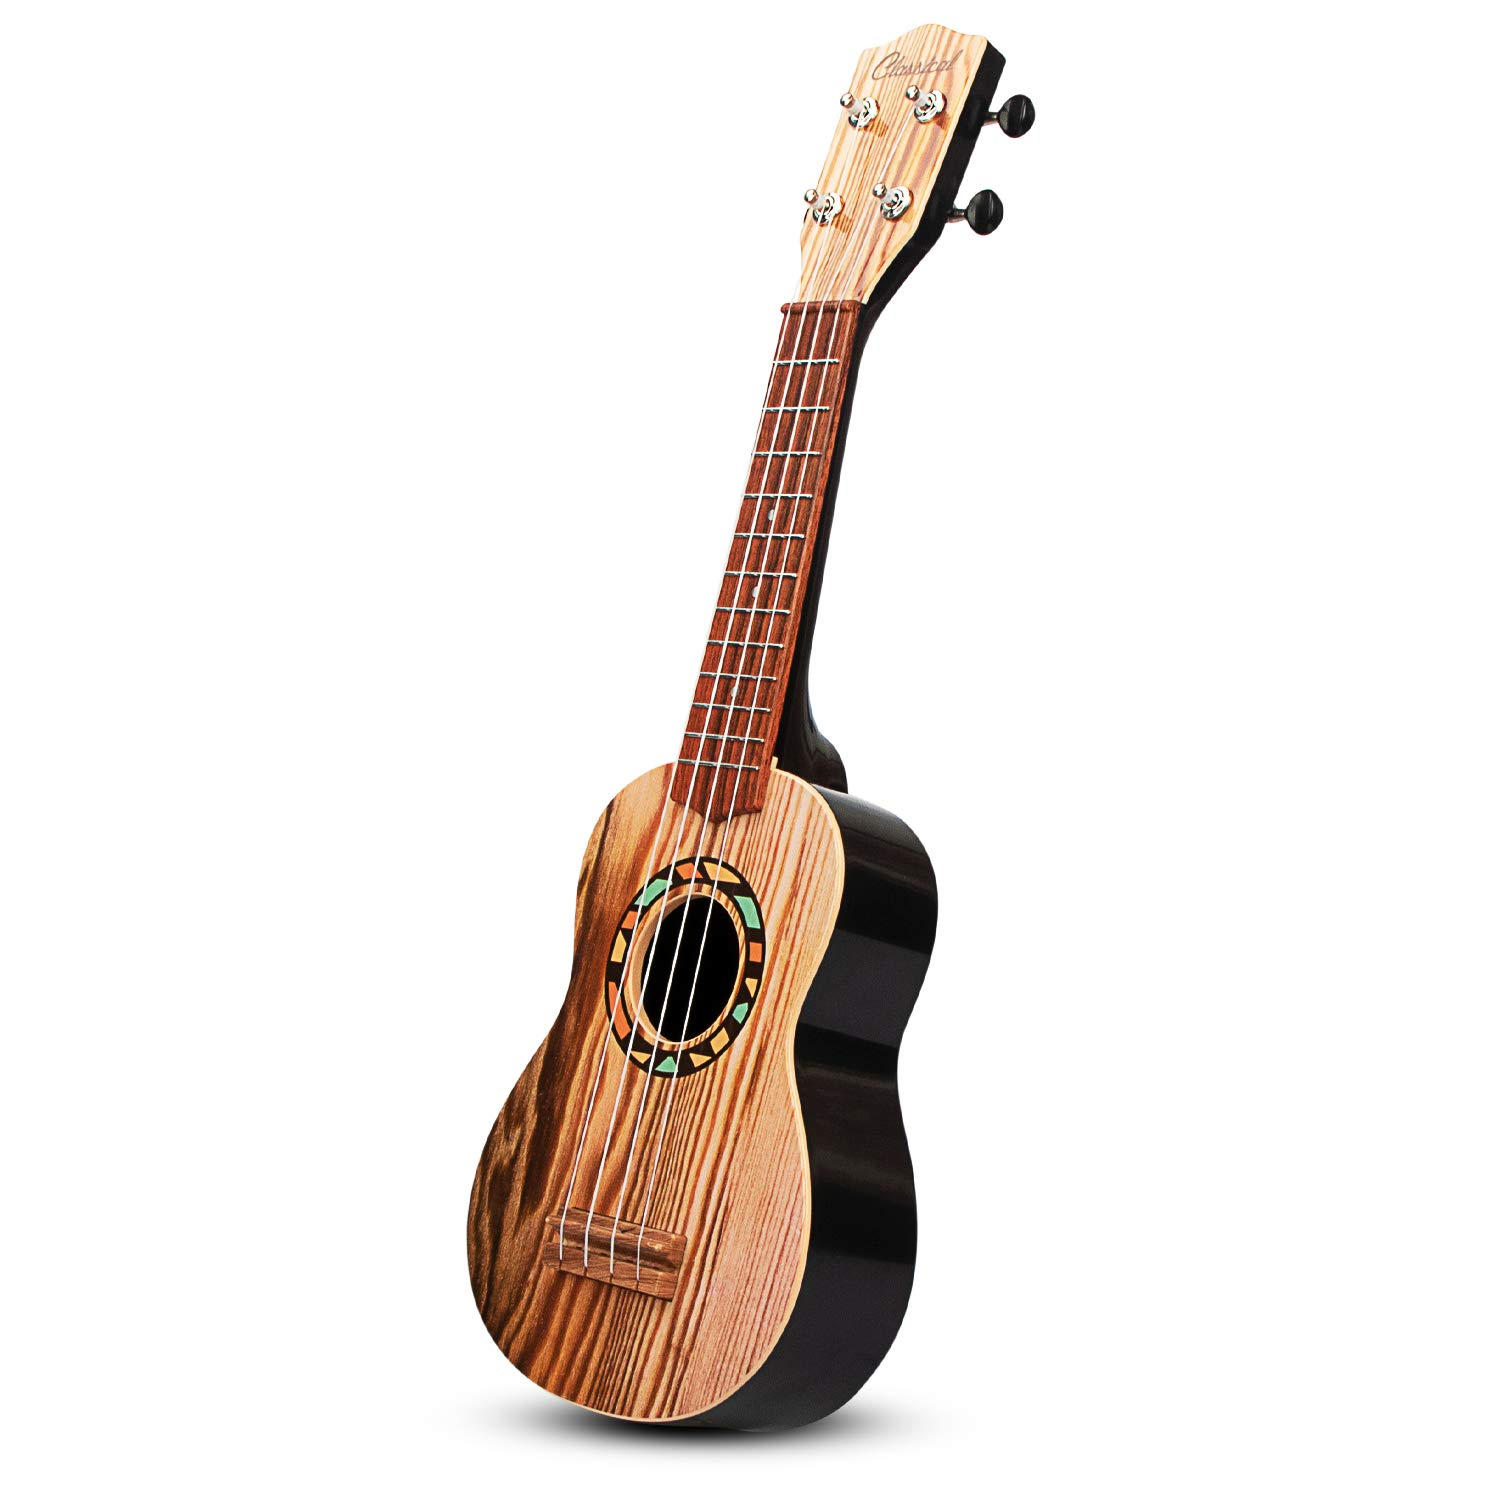 "aPerfectLife 21"" Kids Ukulele Guitar Toy 4 Strings Mini Guitar Children Musical Instruments Educational Learning Toys"